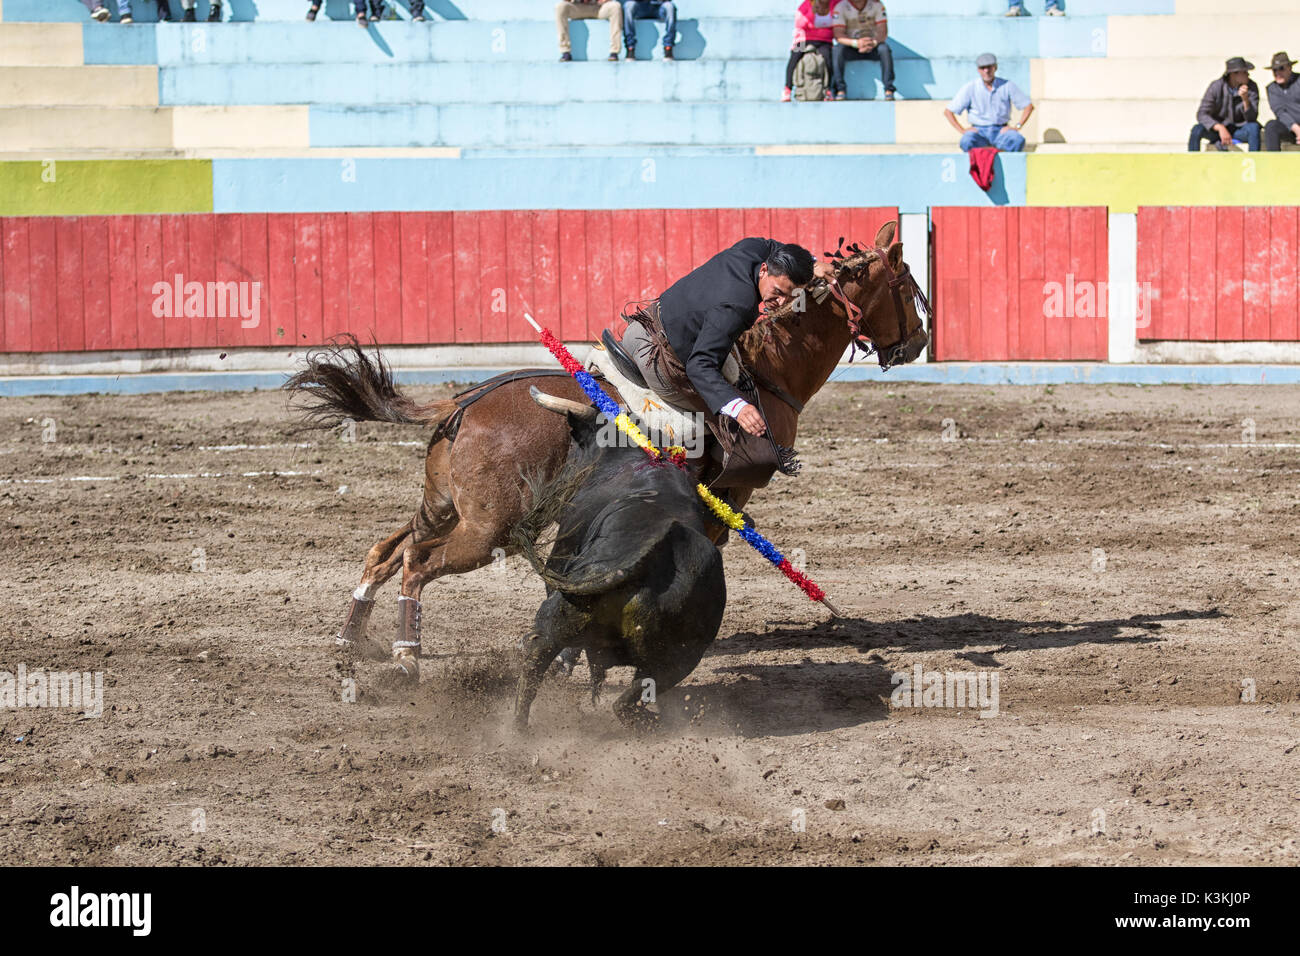 June 18, 2017, Pujili, Ecuador: a bullfighter riding his horse in the arena leaning towards the bull Stock Photo